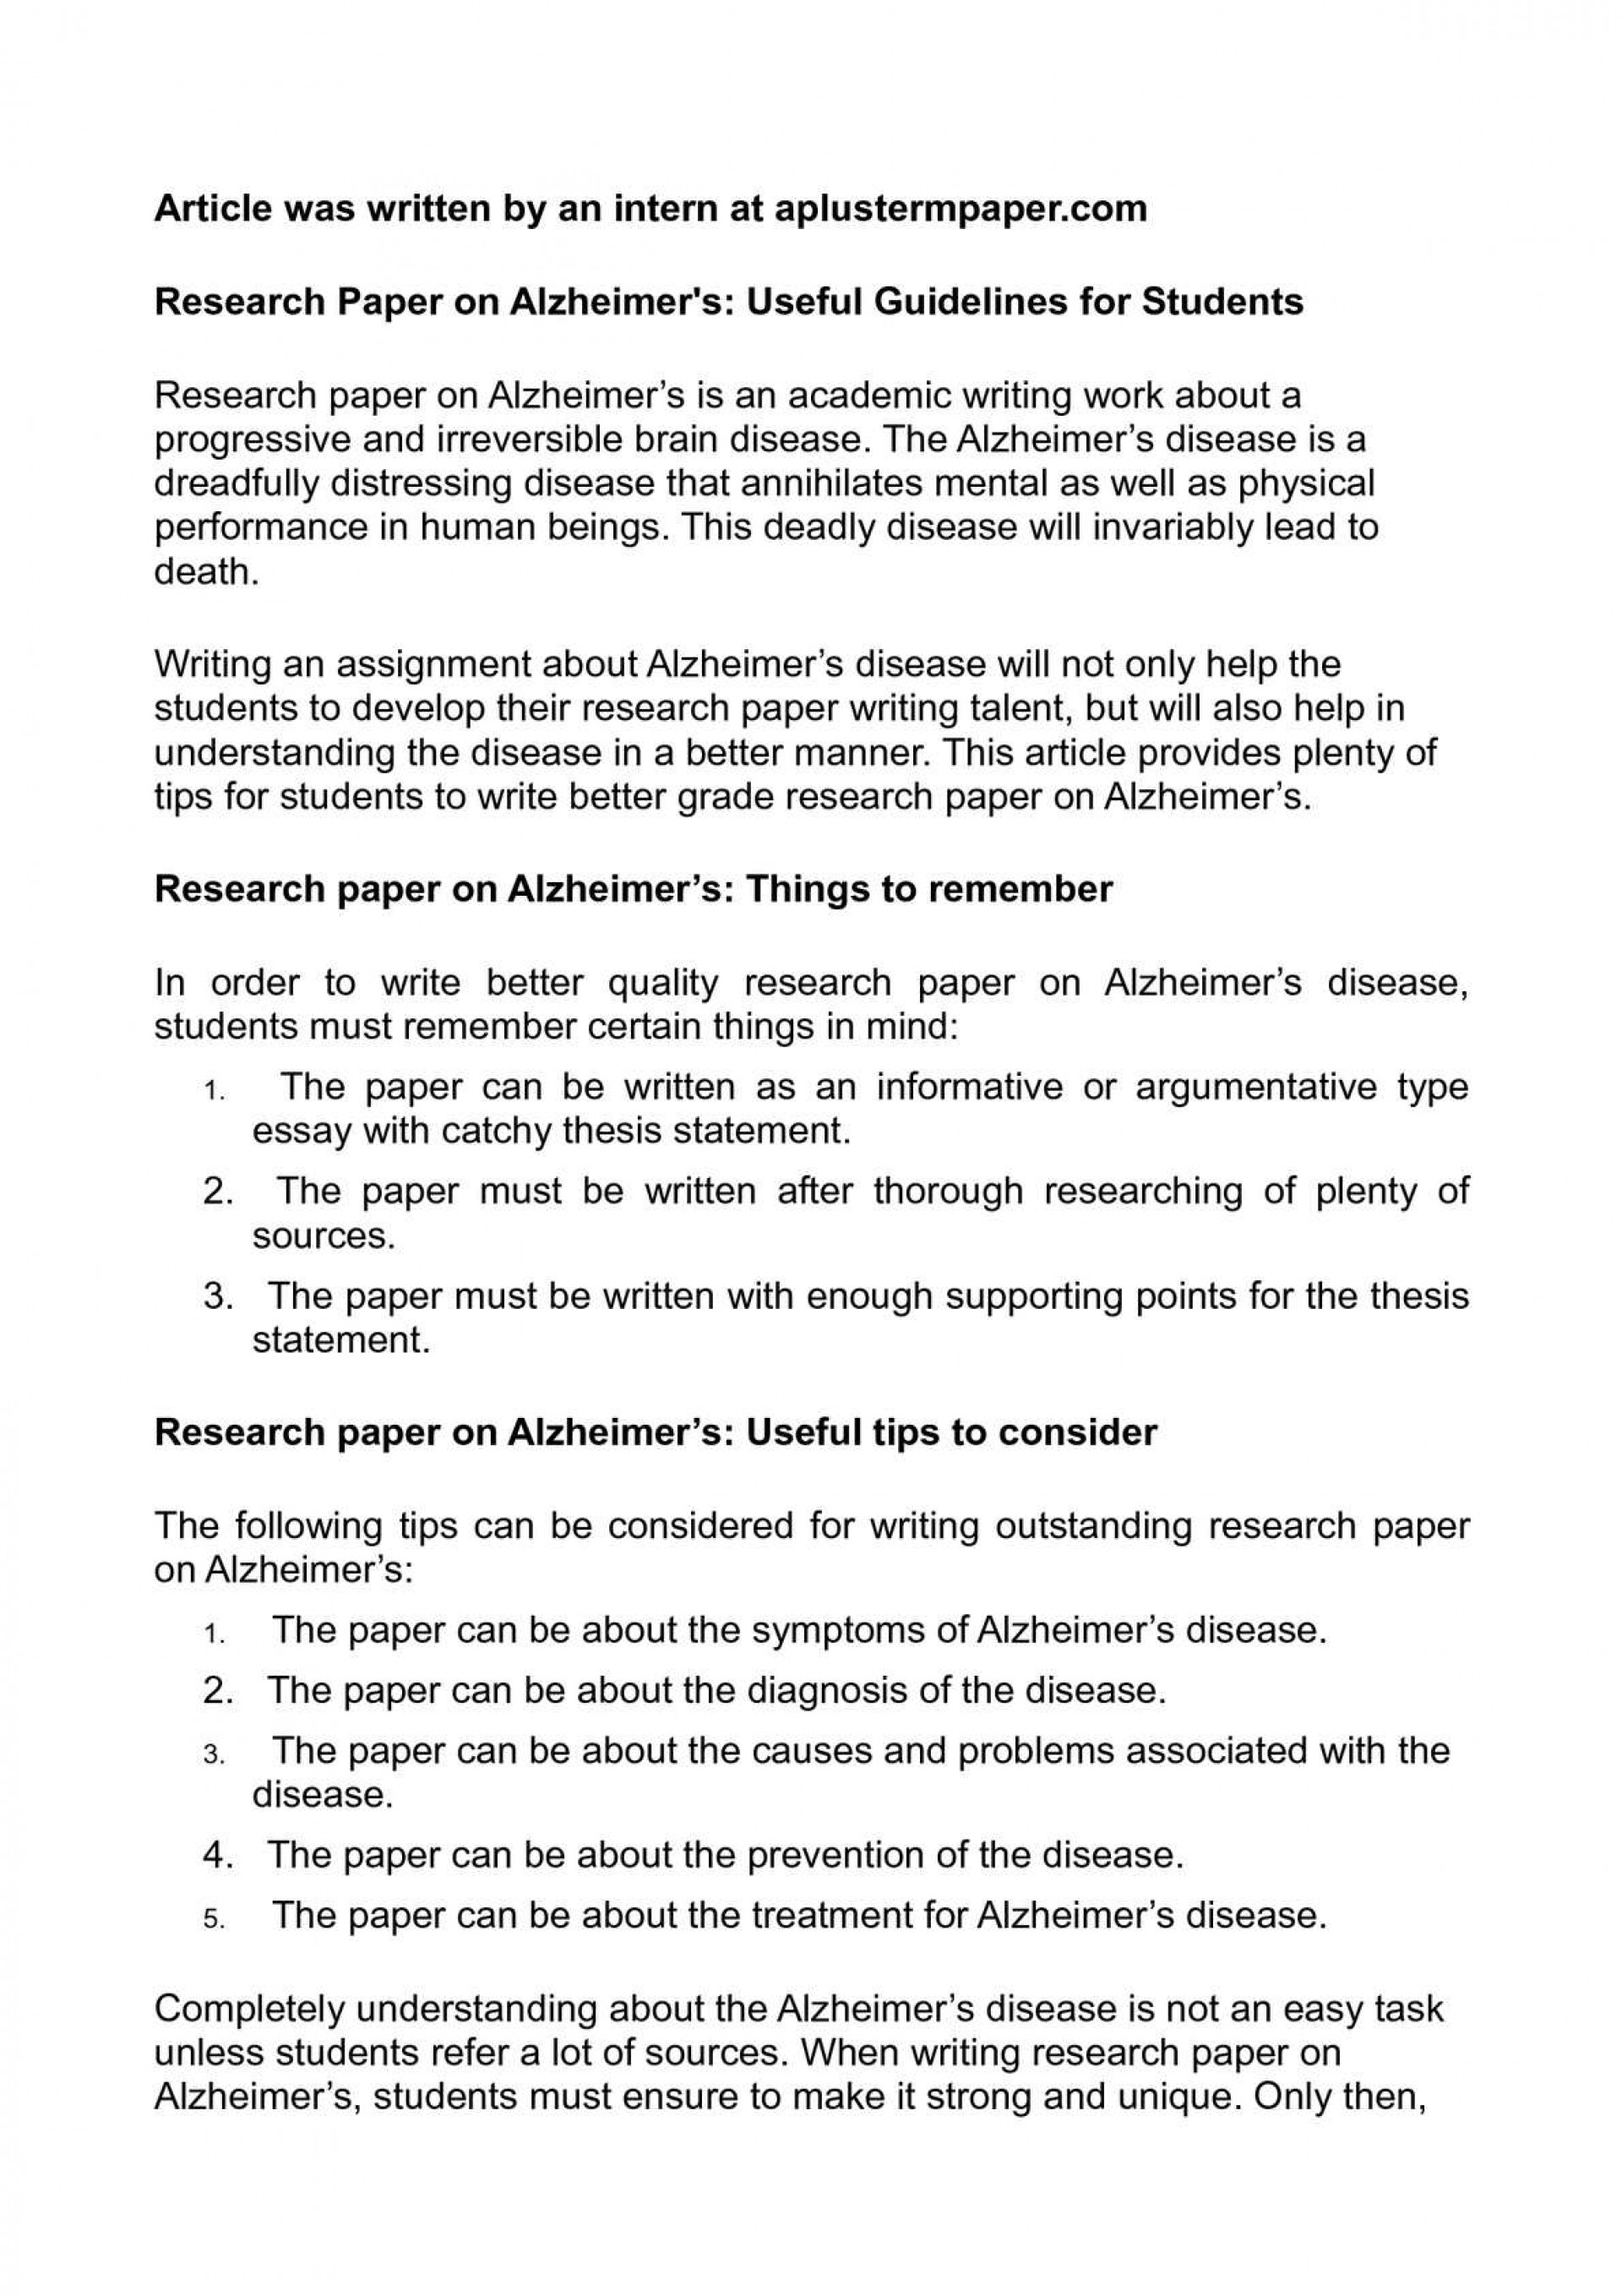 002 Research Paper Alzheimers Disease Introduction Fantastic Alzheimer's 1920